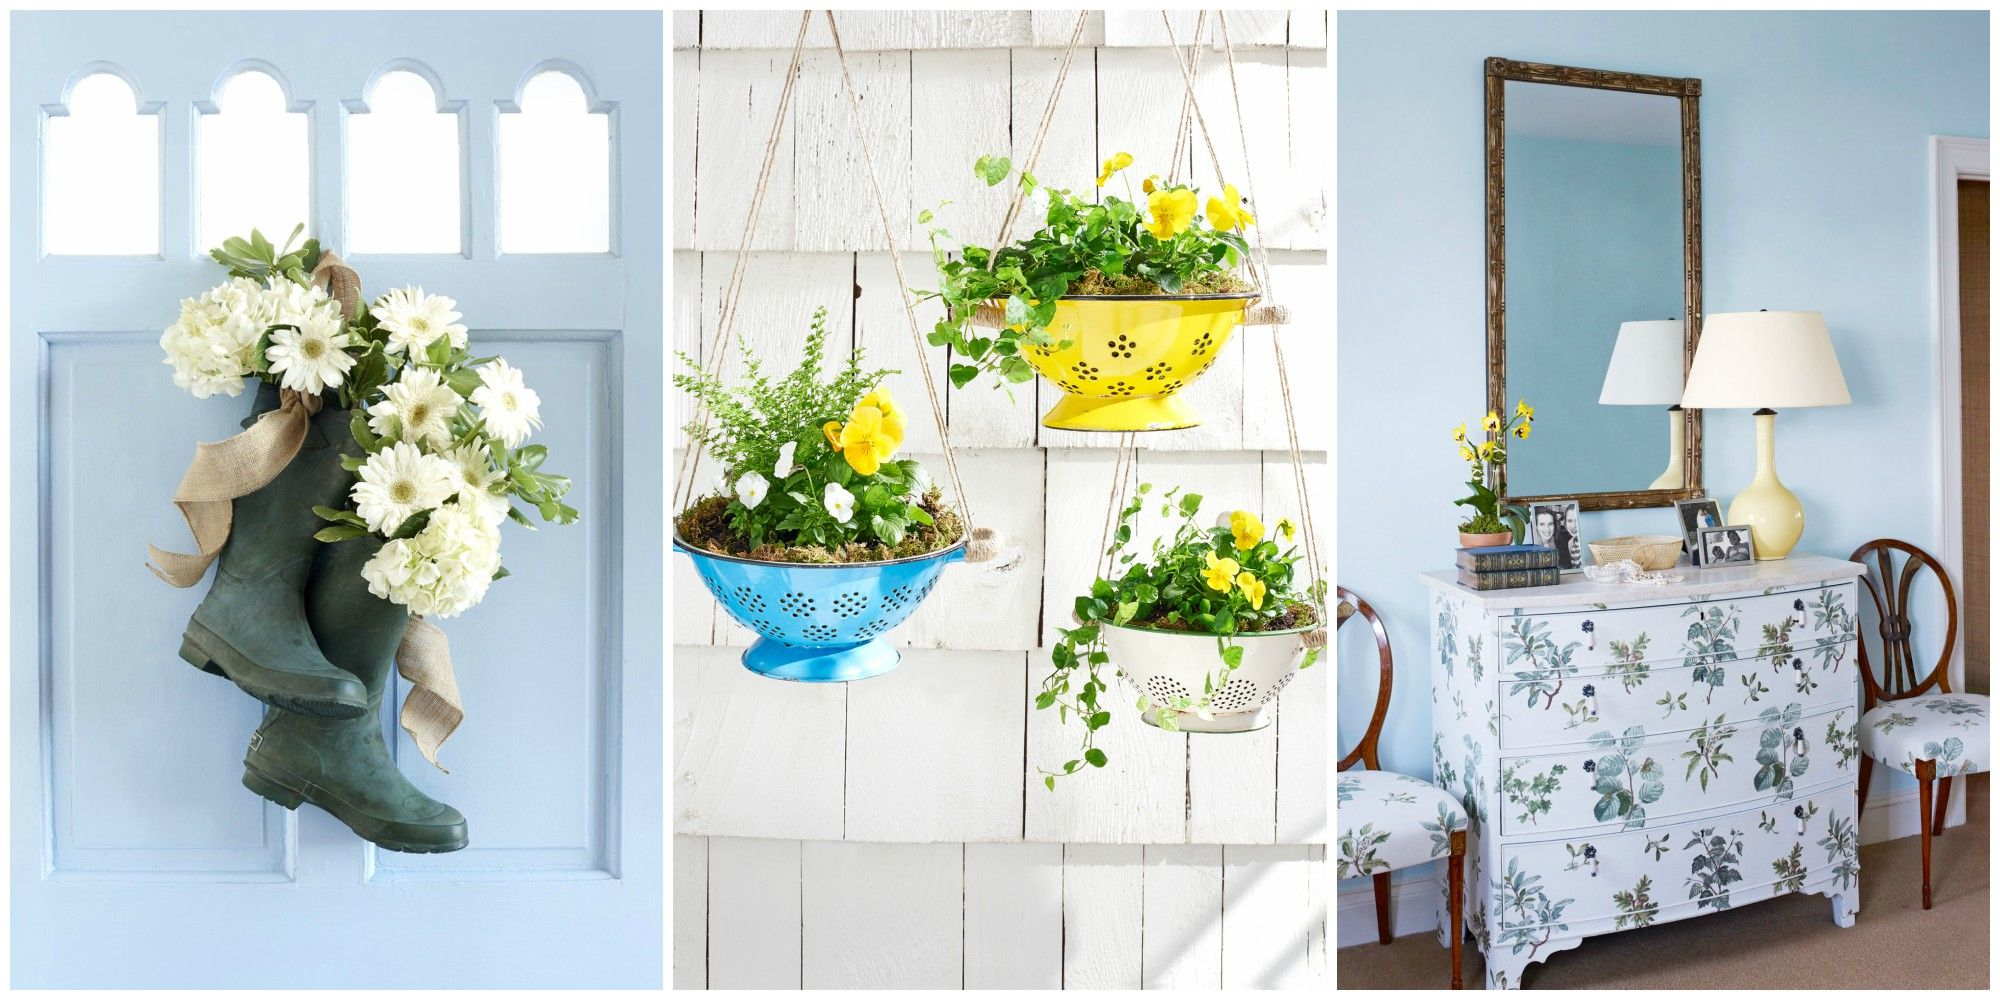 36 fun spring craft ideas \u2013 easy spring crafts and projects36 spring crafts that will brighten your home